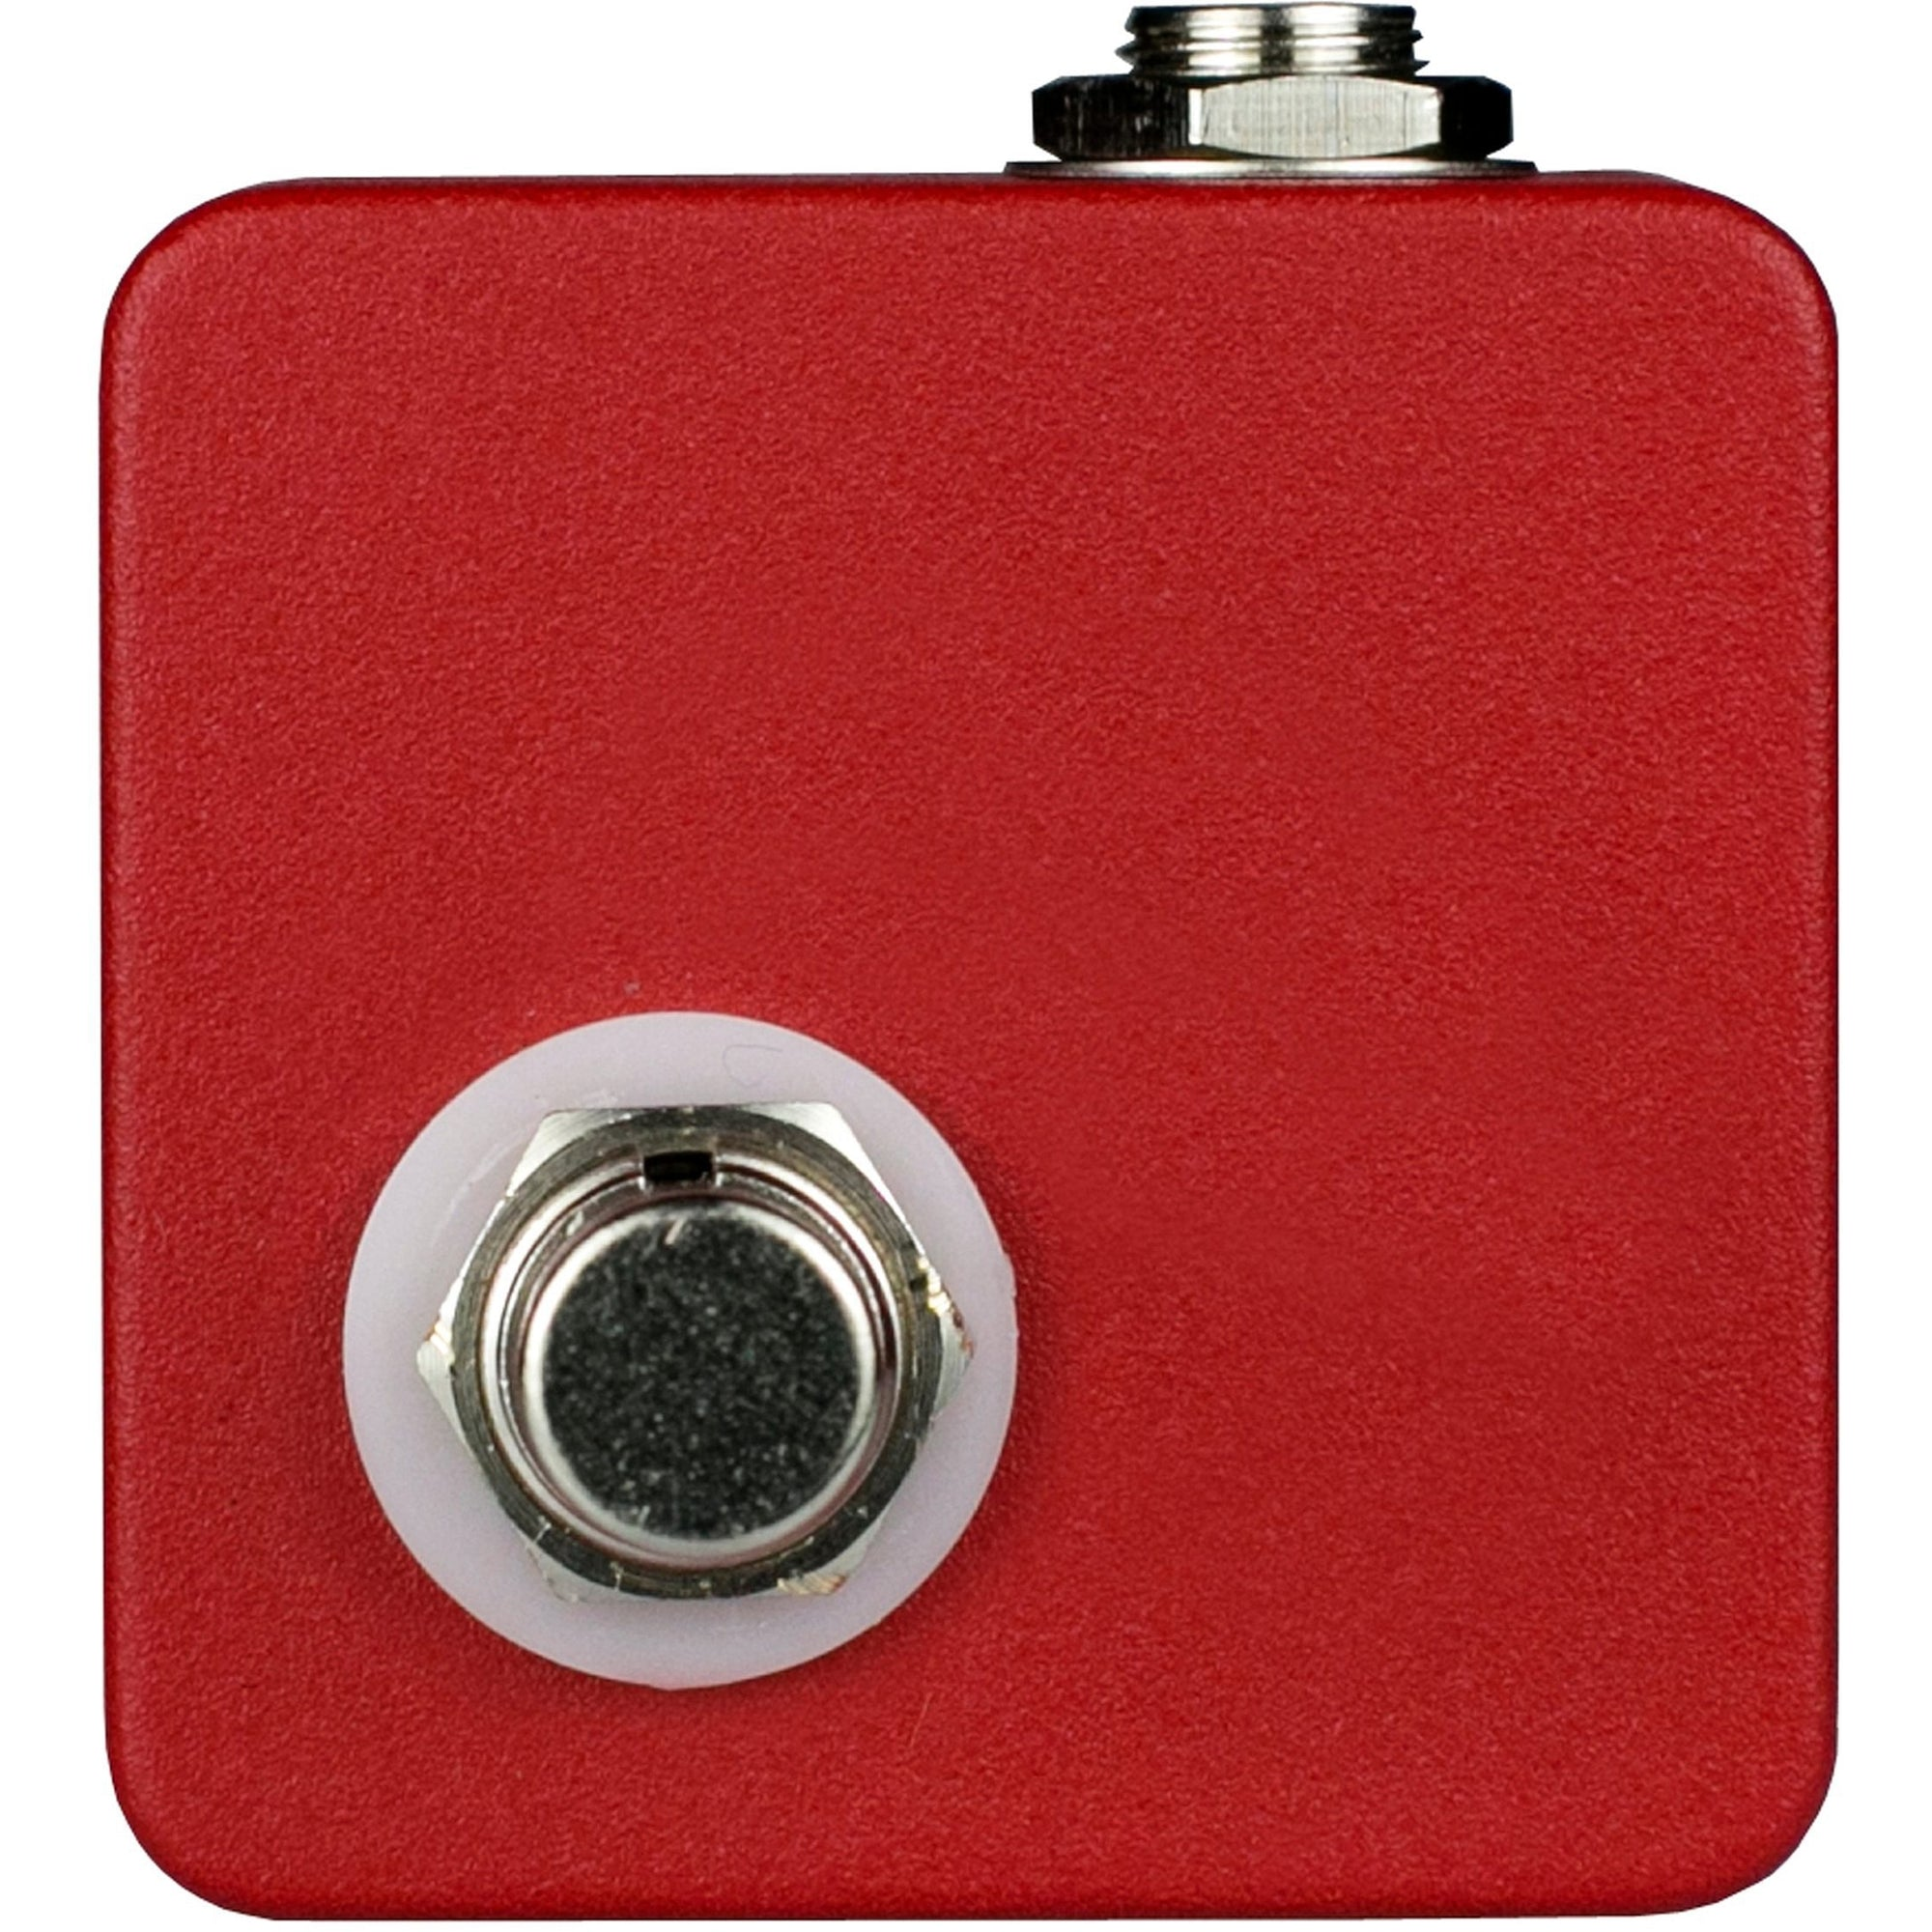 JHS Red Remote Footswitch Pedal